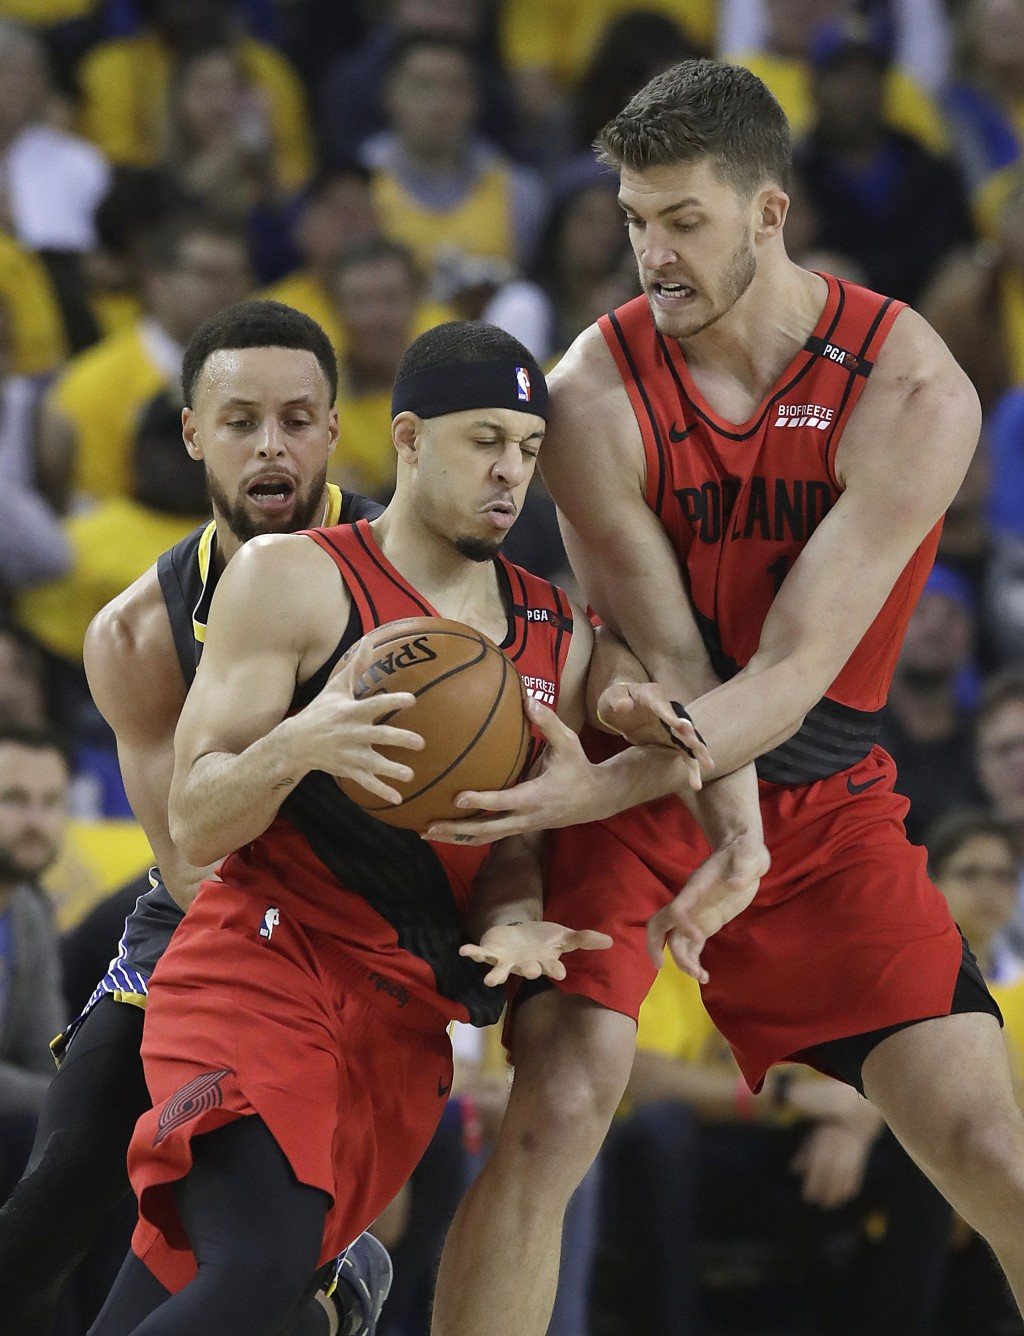 Portland Trail Blazers guard Seth Curry, center, controls the ball next to forward Meyers Leonard, right, as he is is defended by Golden State Warrior